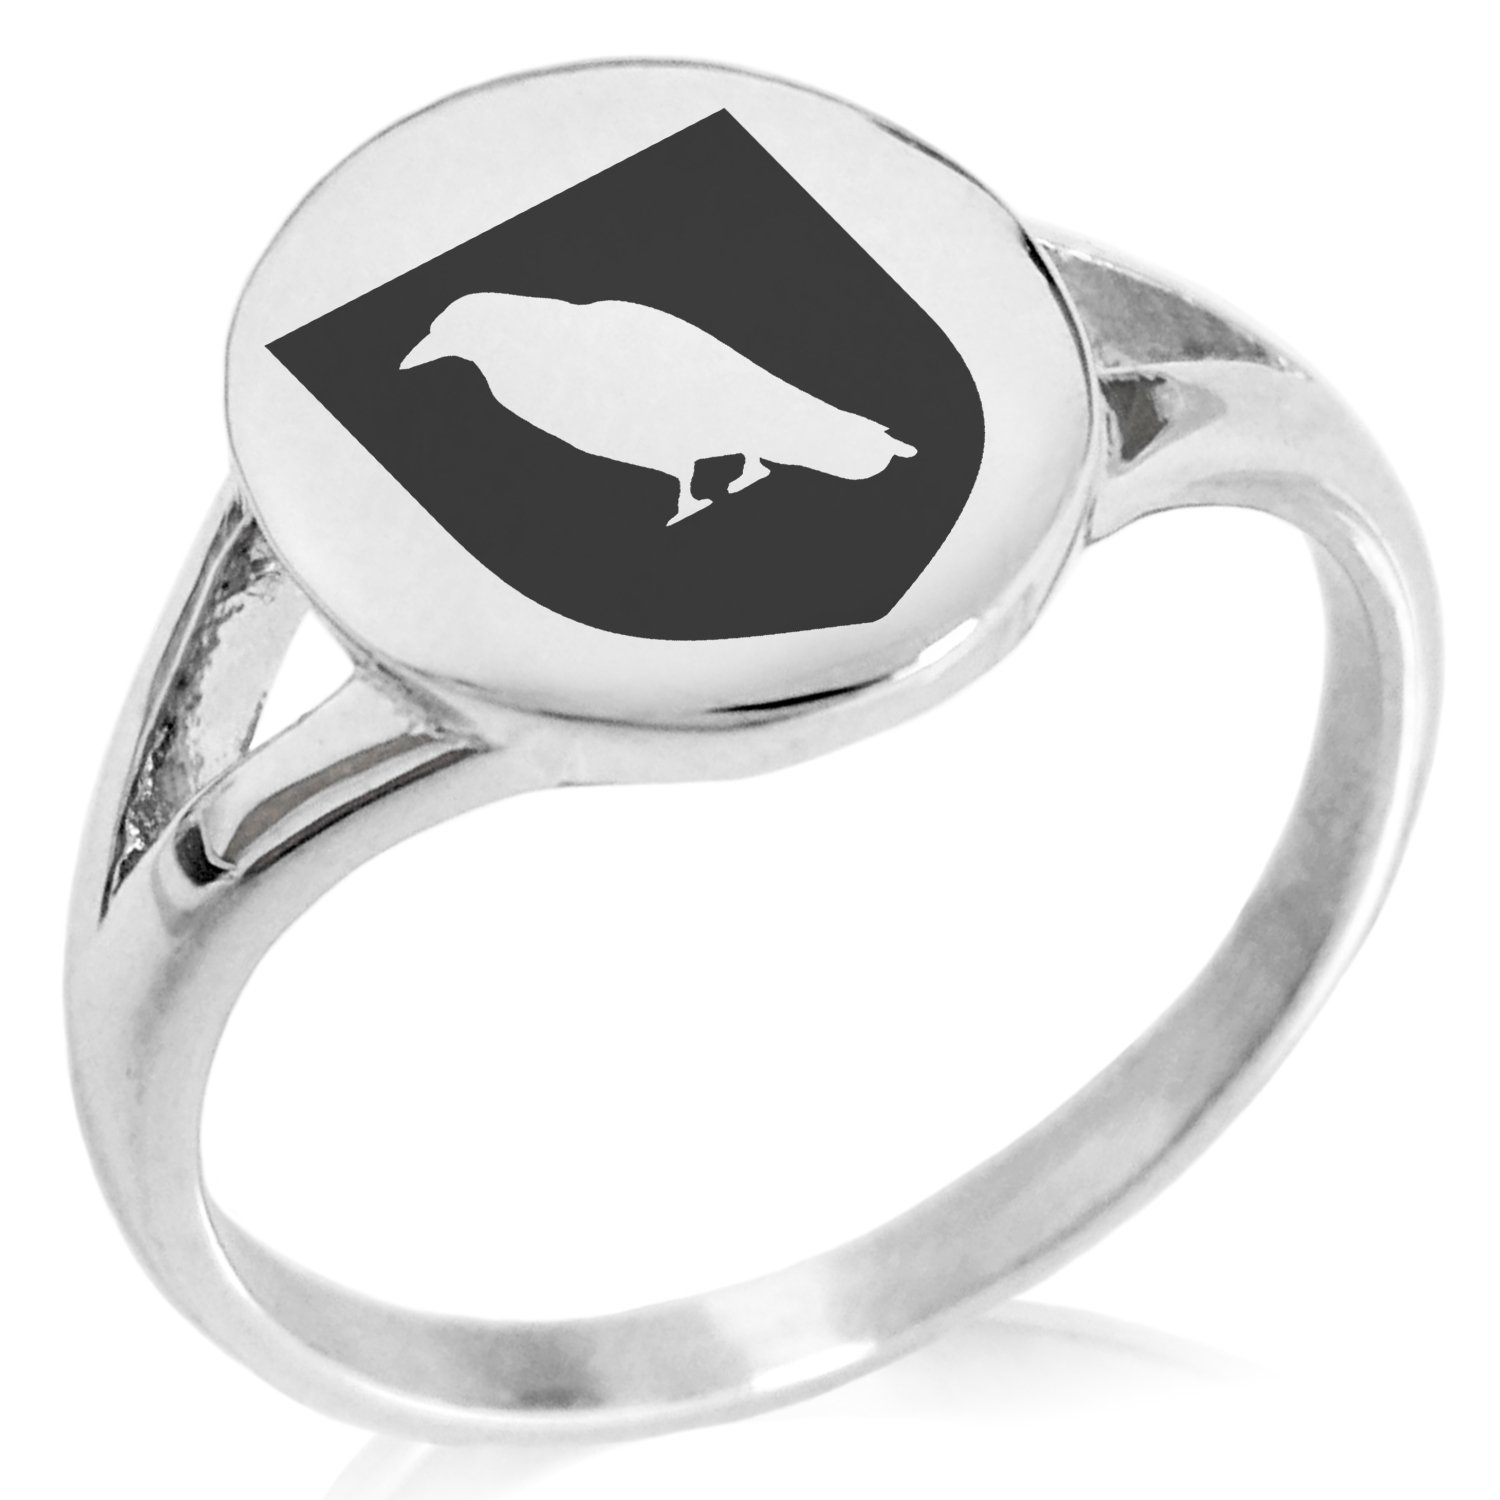 Tioneer Stainless Steel Raven Bringer of Death Coat of Arms Shield Symbol Minimalist Oval Top Polished Statement Ring, Size 5